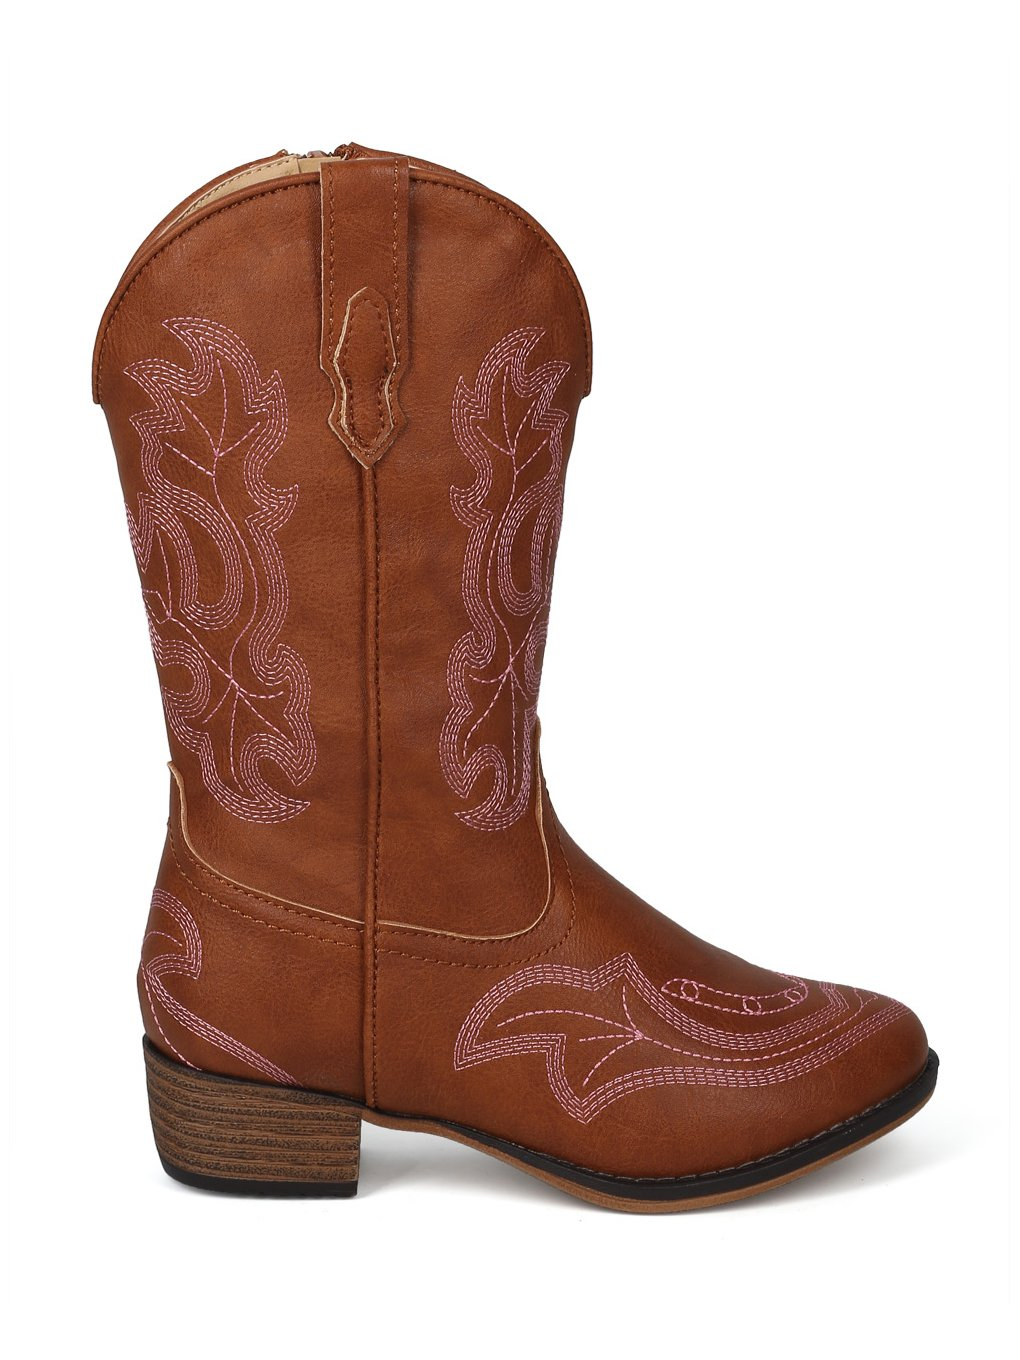 Alrisco Girls Leatherette Embroidered Tall Cowboy Boot HG02 - Tan Leatherette (Size: Little Kid 1) by Alrisco (Image #1)